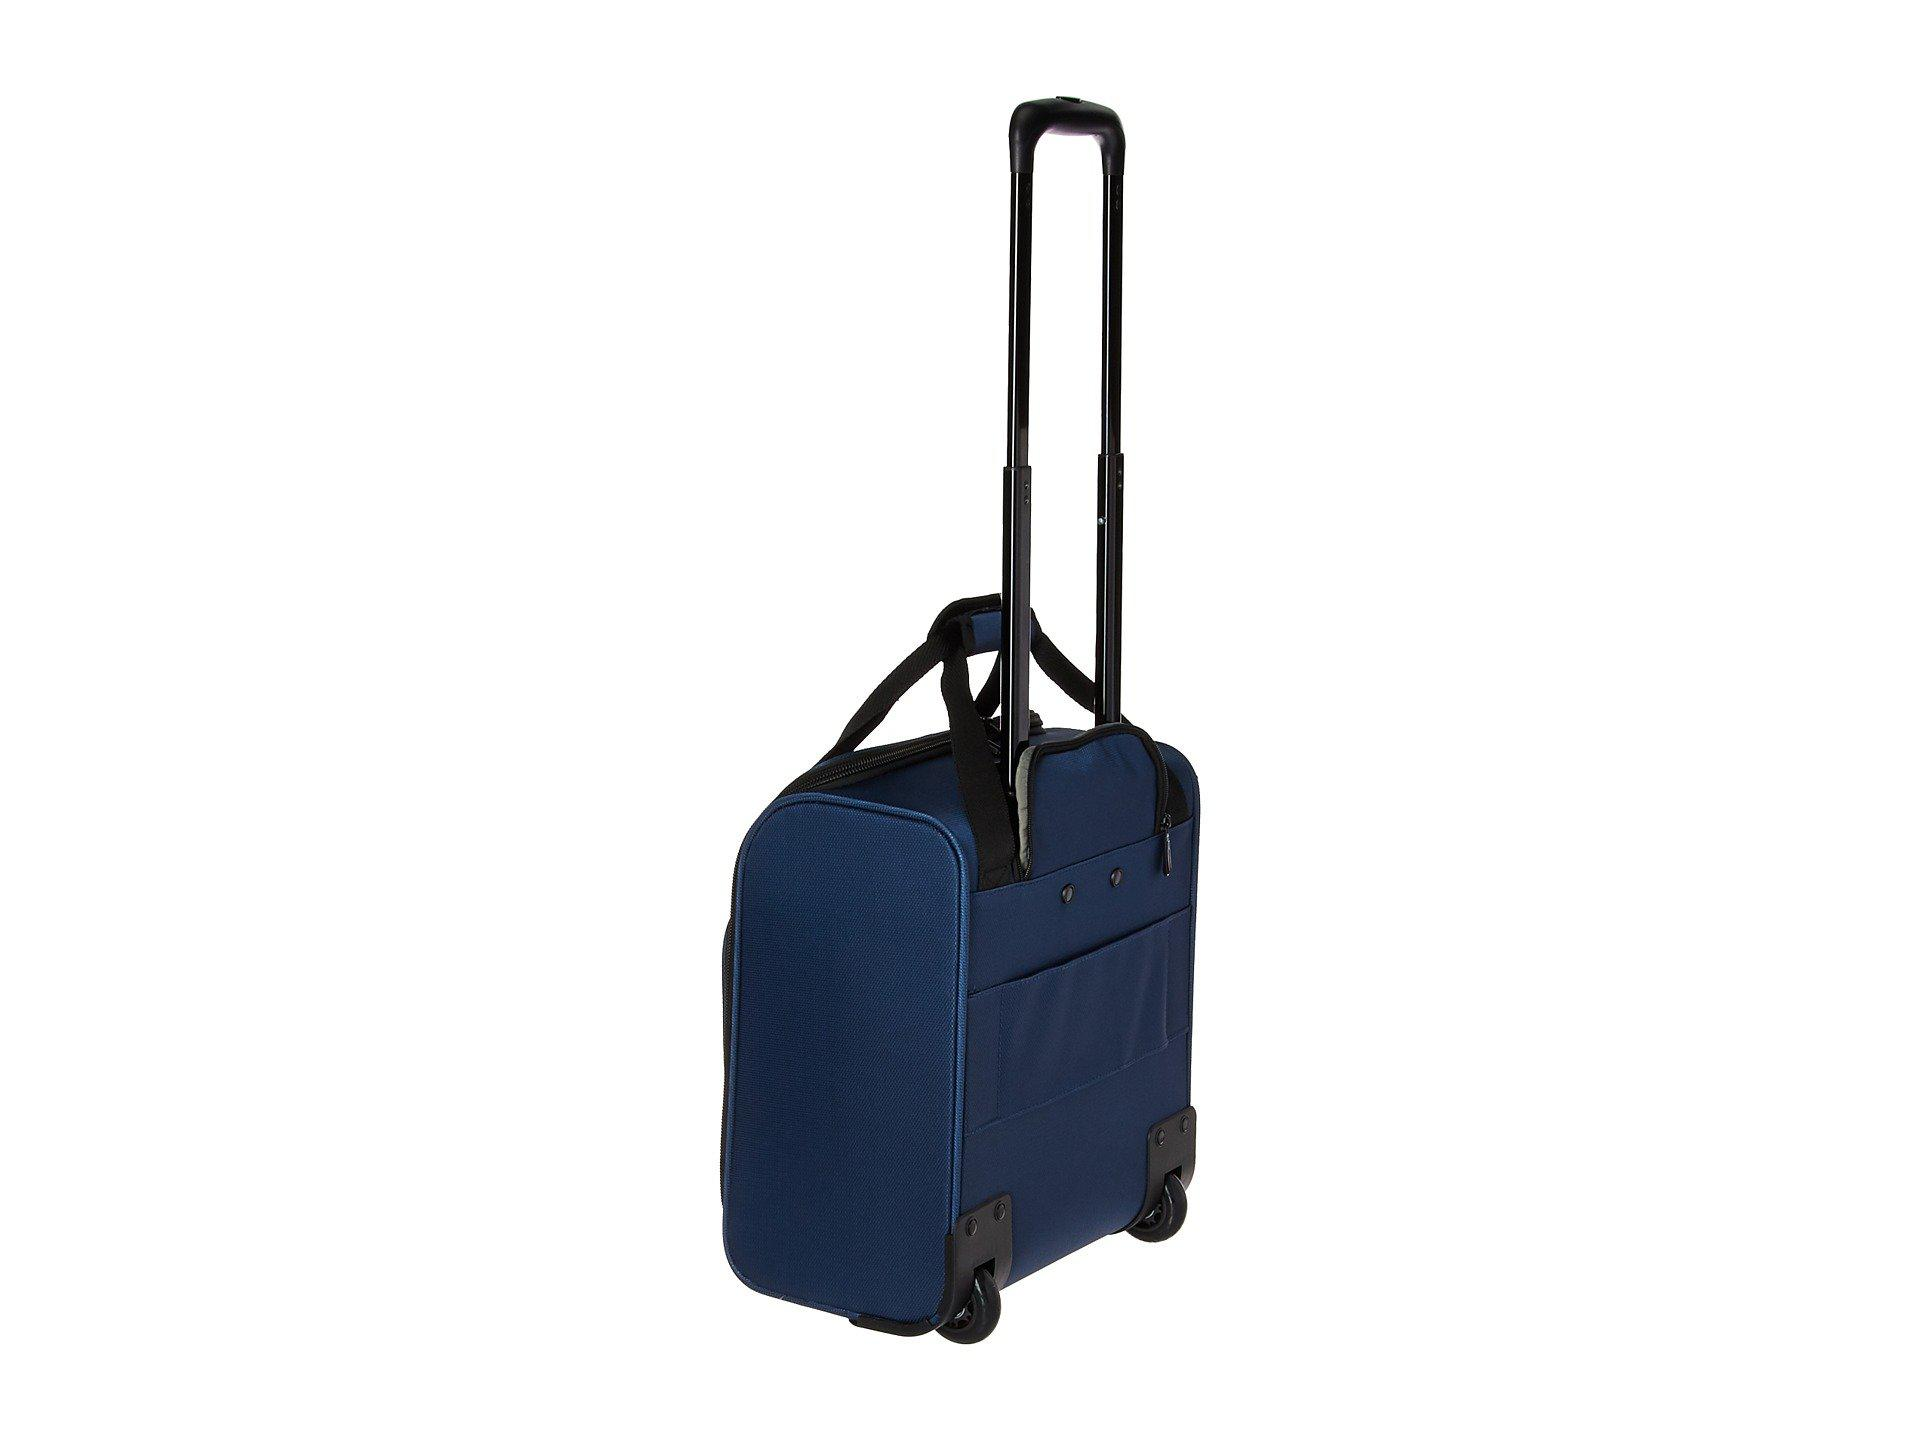 4d9bed3141a9 Samsonite - Leverage Lte Wheeled Boarding Bag (blue) Luggage for Men -  Lyst. View fullscreen